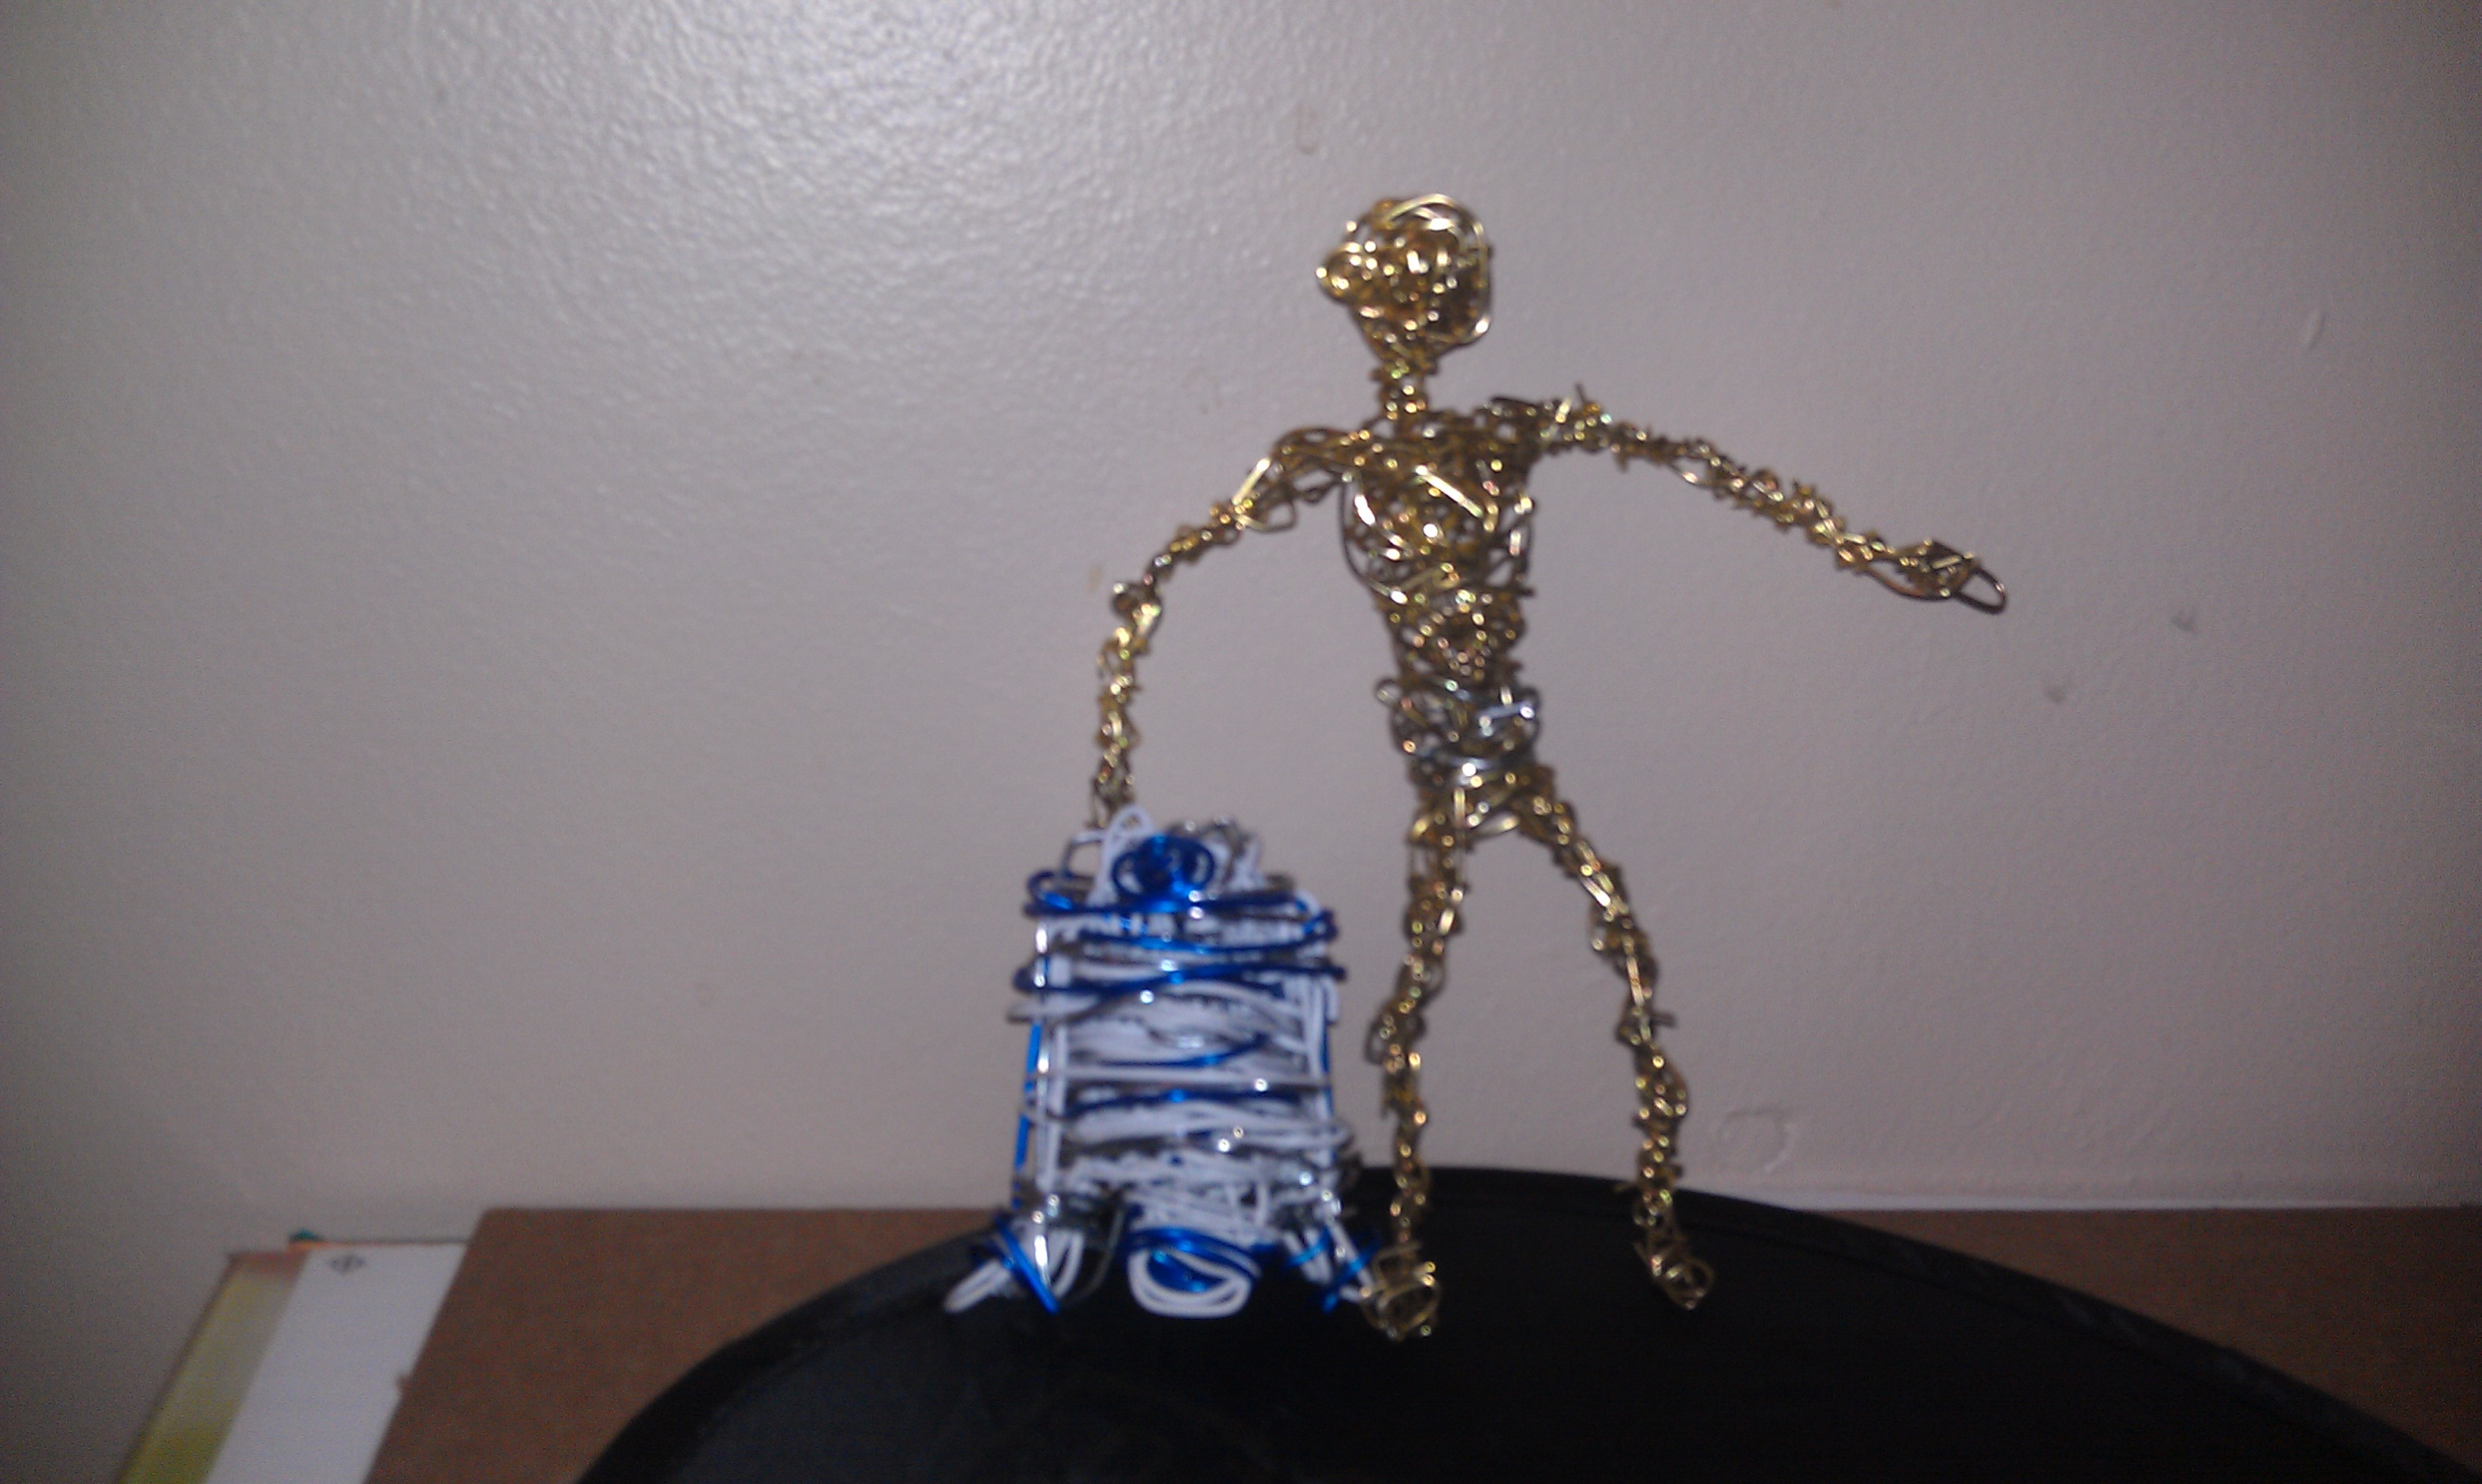 Robots Paperclip Creations